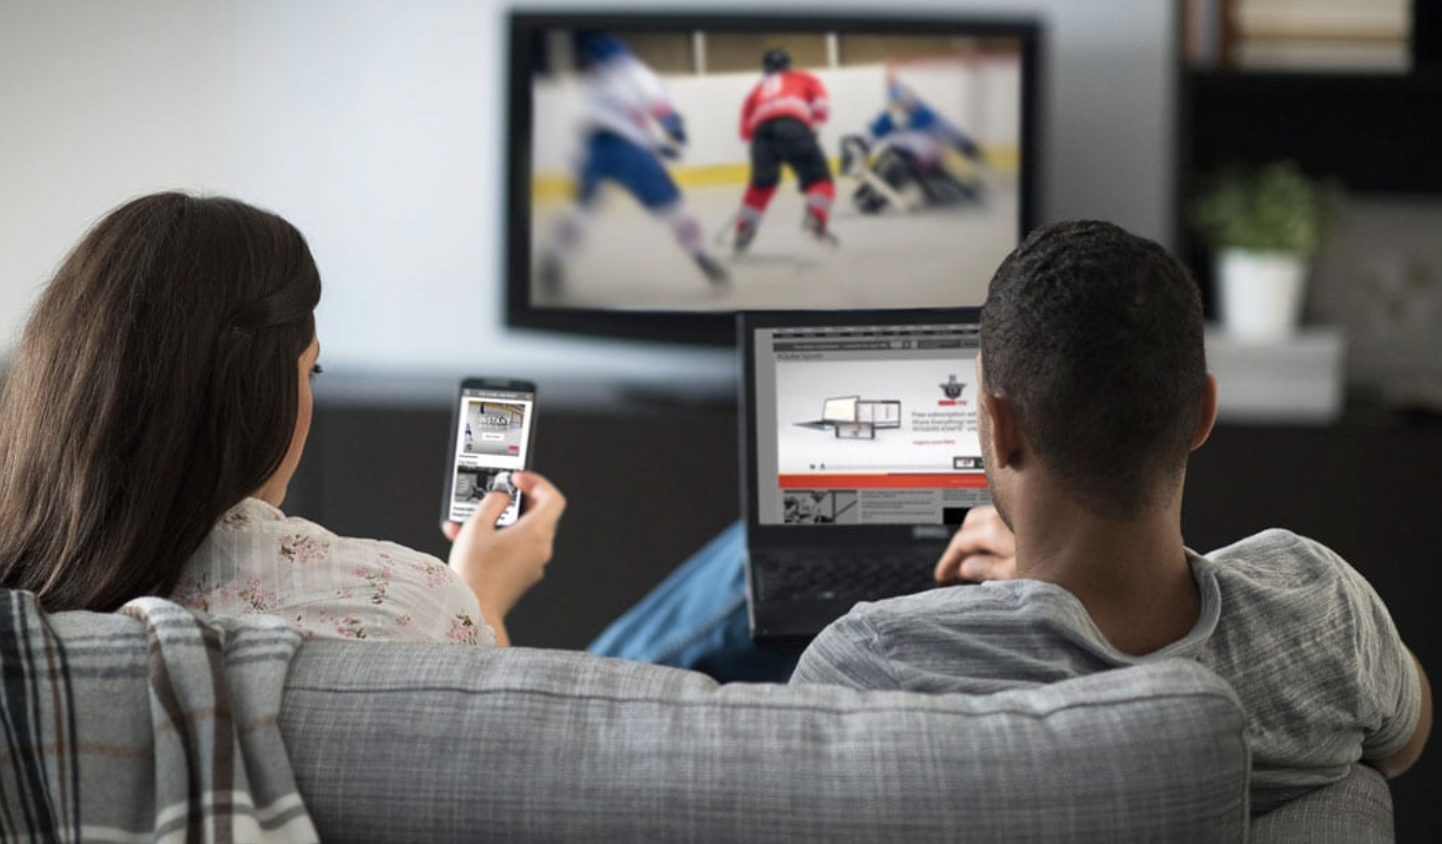 Surprising Health Benefits of Watching Sports on TV